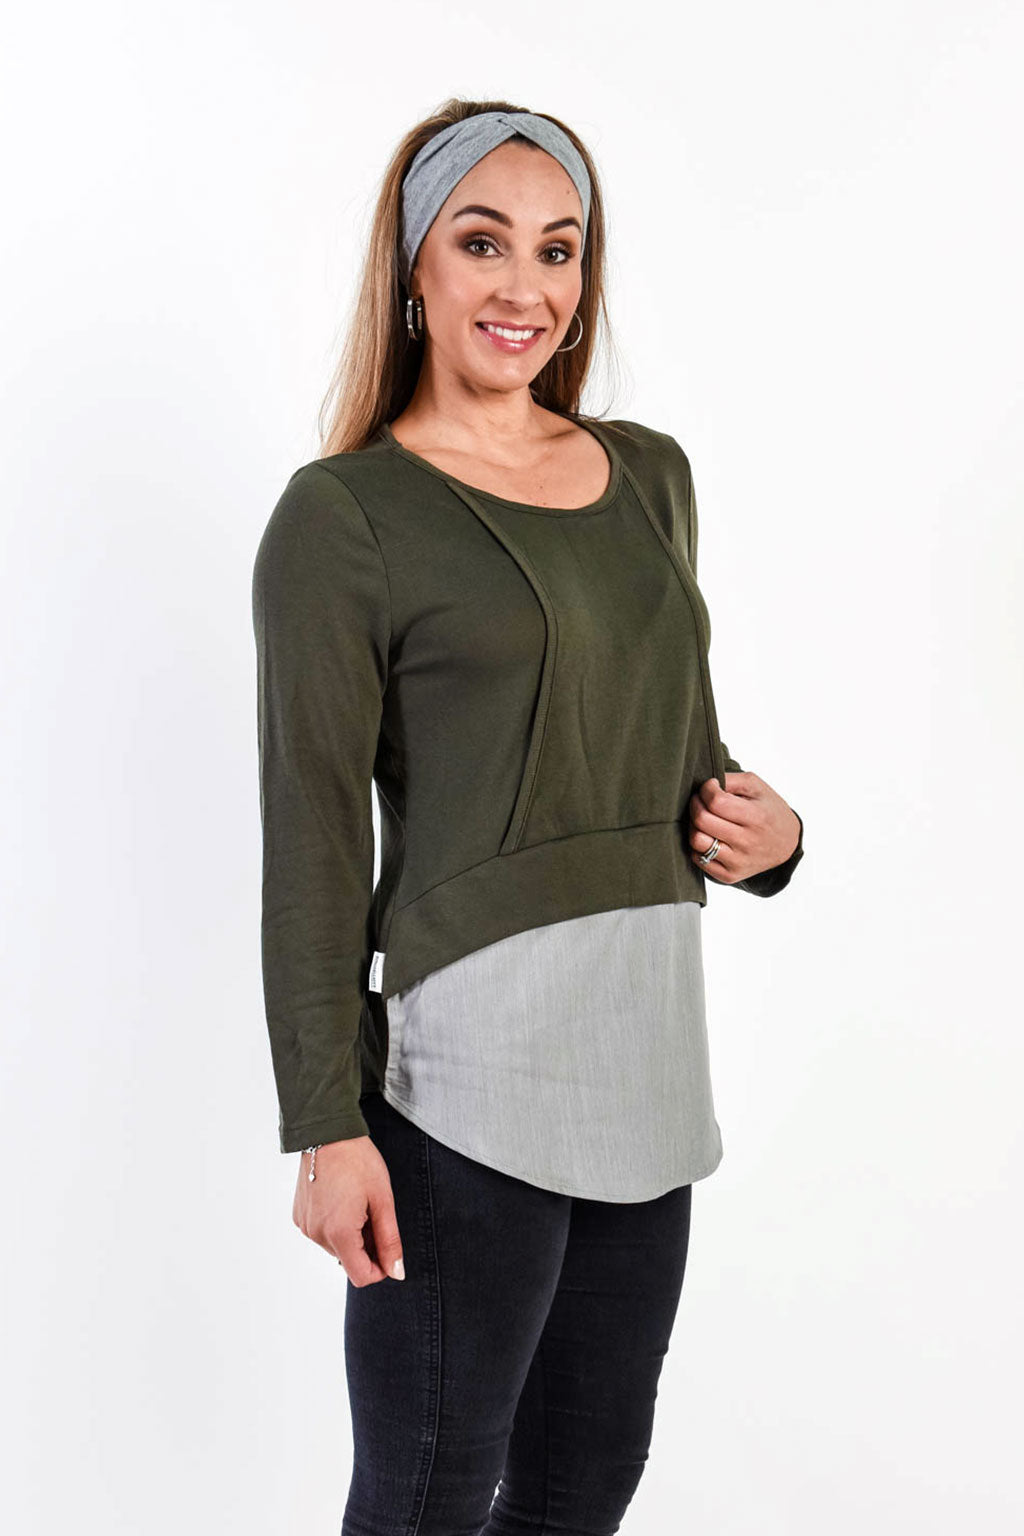 Curvy Love Knit Top - Khaki/Grey (FINAL SALE, L & XL left)